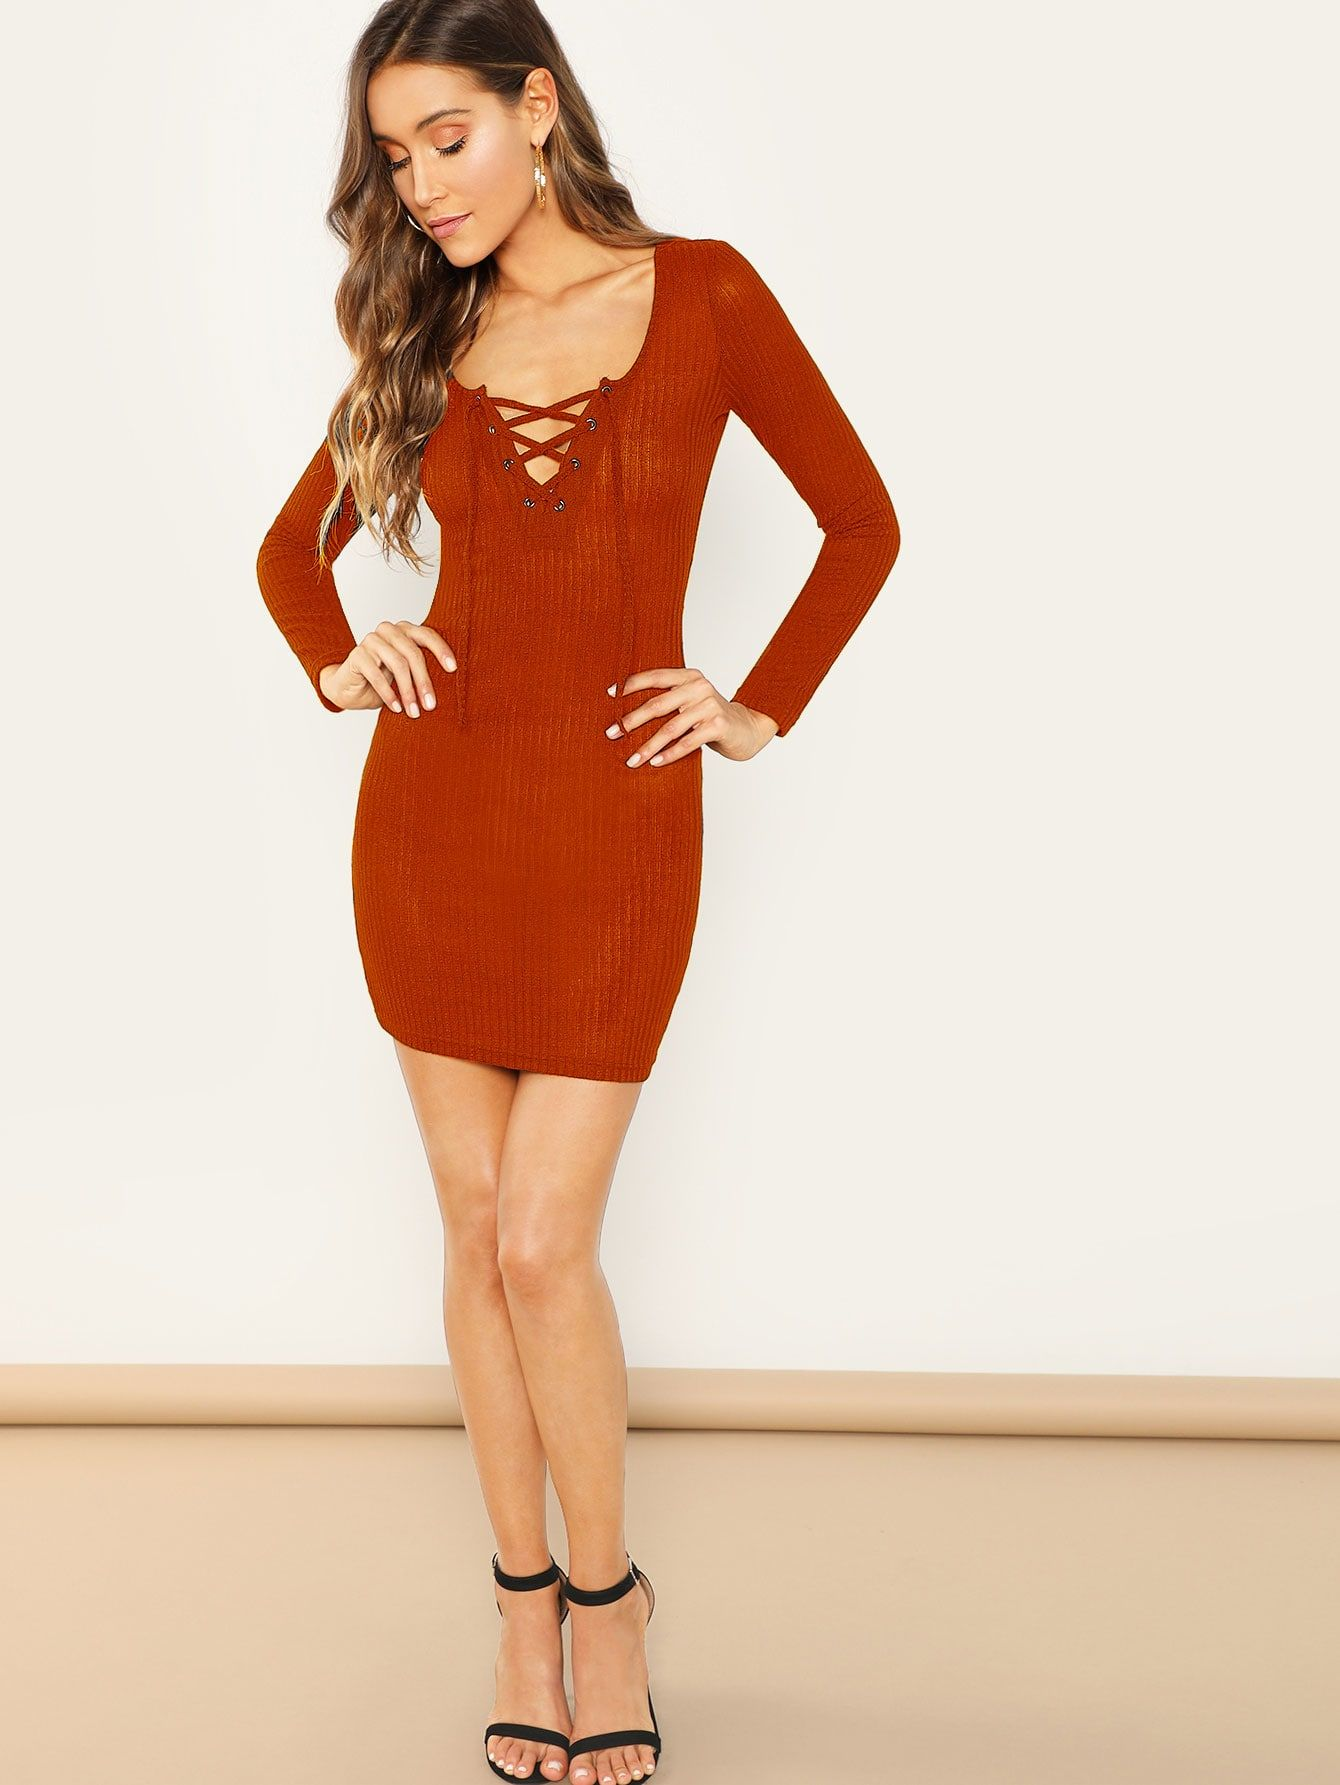 11d5a975d980 Glamorous and Sexy Tshirt Plain Bodycon Deep V Neck Long Sleeve Regular  Sleeve Natural Orange Short Length Lace Up Ribbed Knit Bodycon Dress